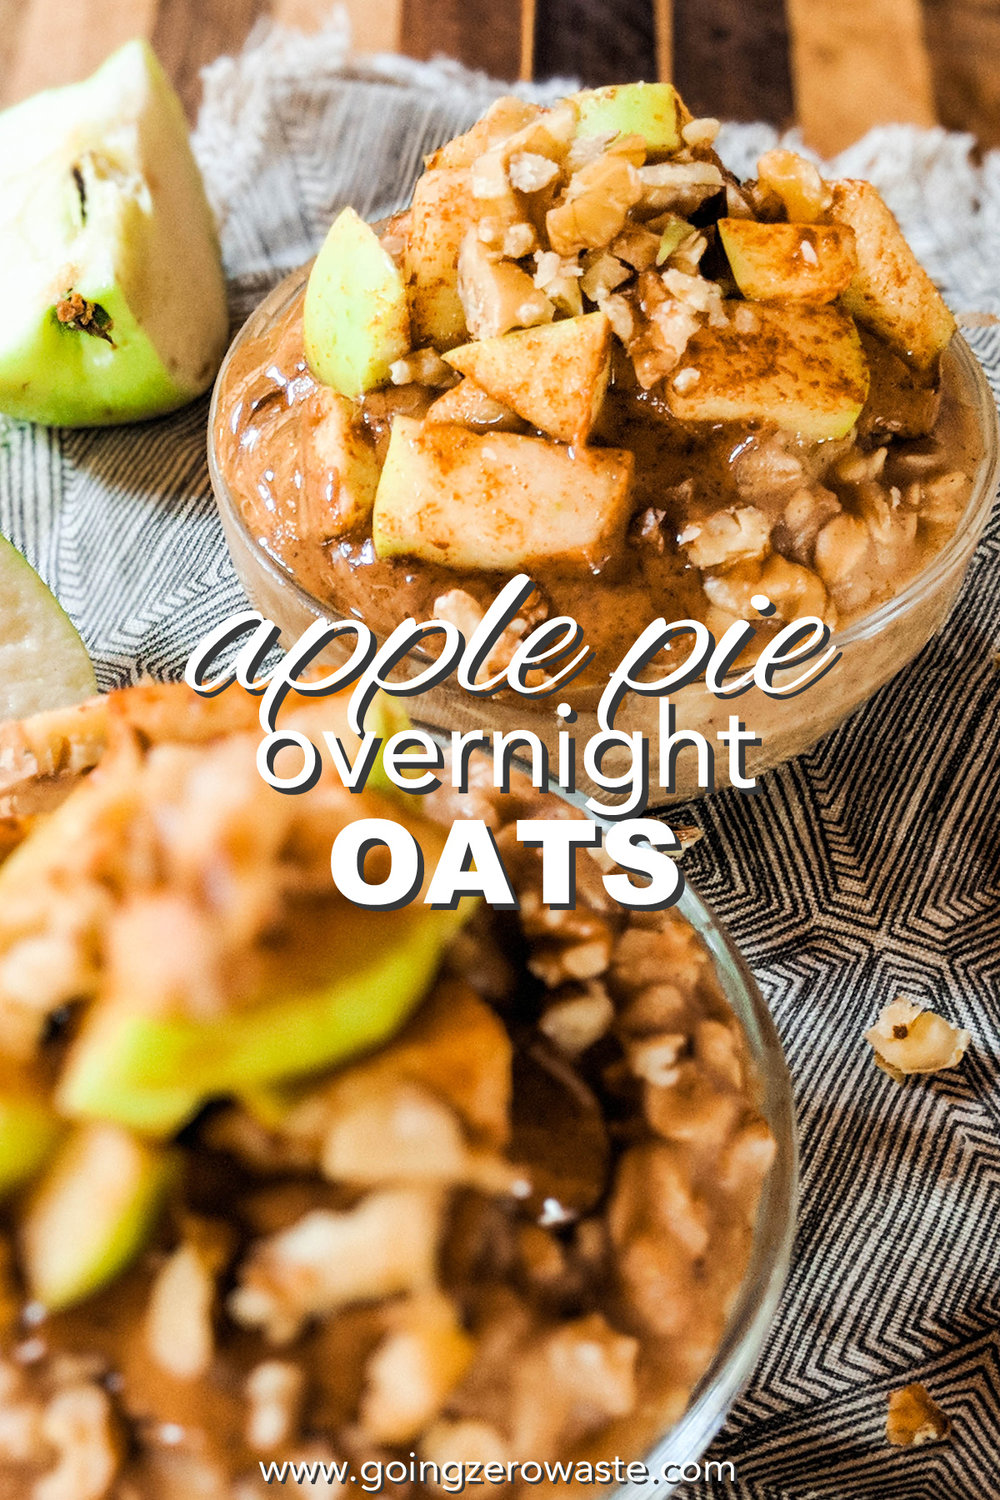 Apple Pie Overnight Oats from www.goingzerowaste.com #fallrecipes #applepie #overnightoats #apples